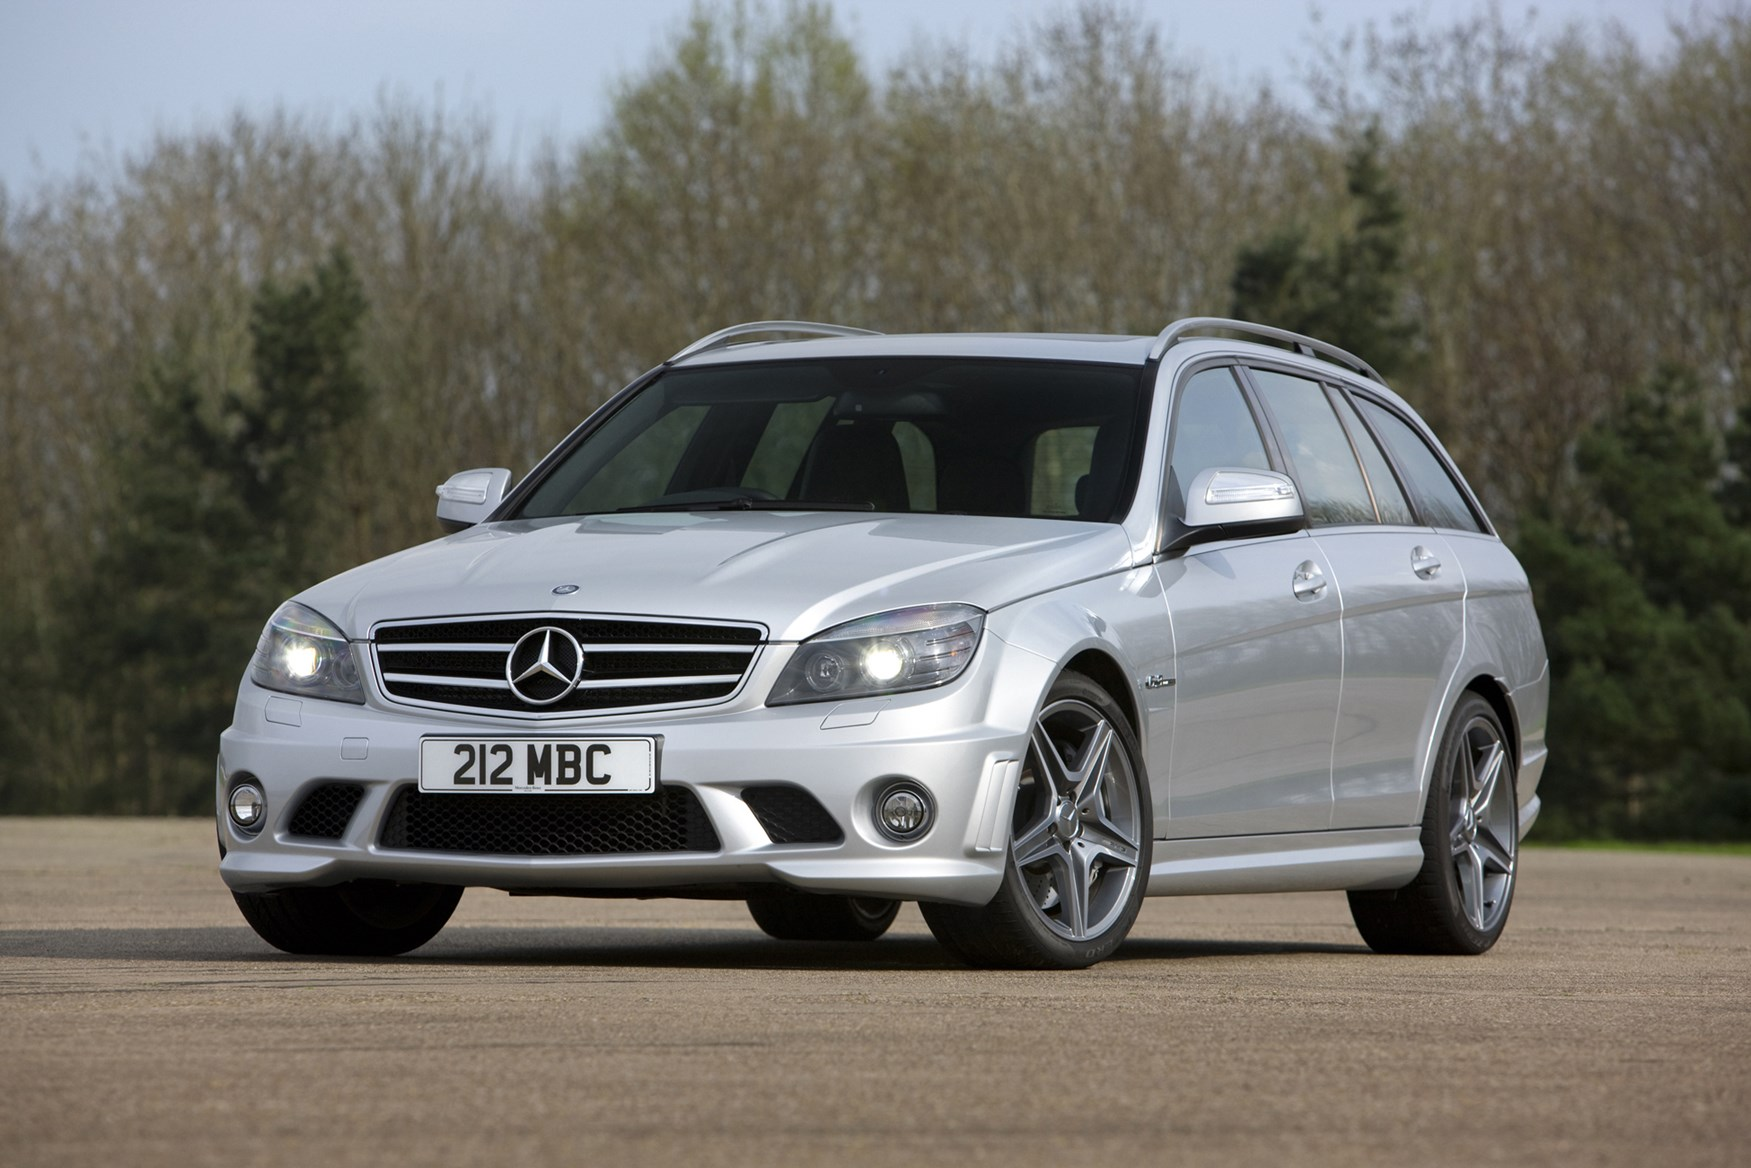 prestige a autocare k c see index img benz class t listings must mercedes